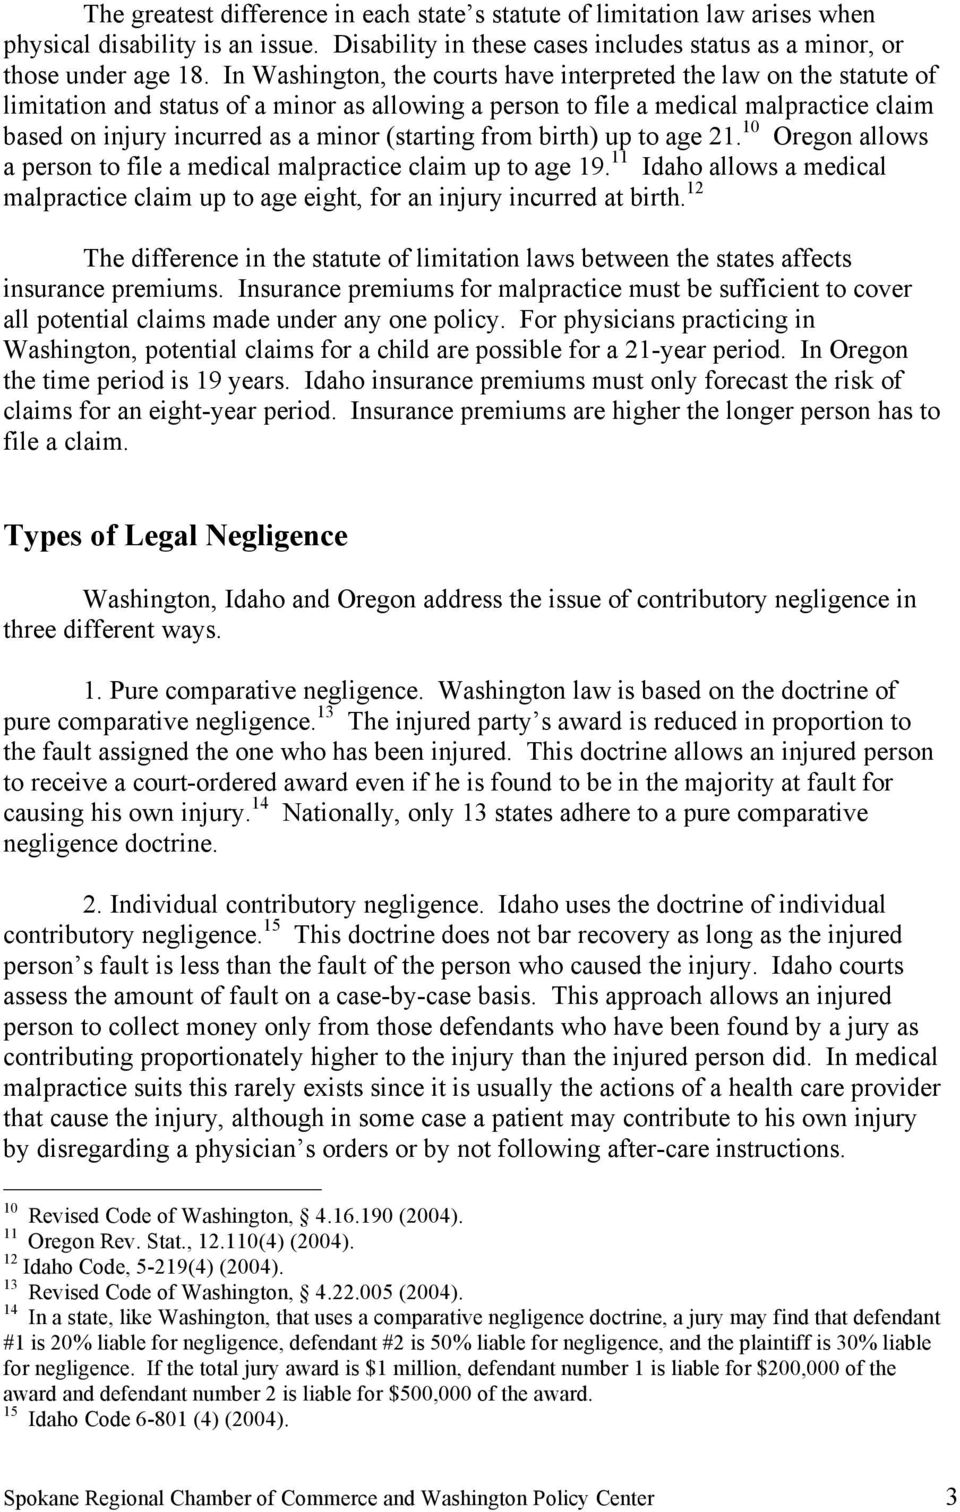 (starting from birth) up to age 21. 10 Oregon allows a person to file a medical malpractice claim up to age 19.